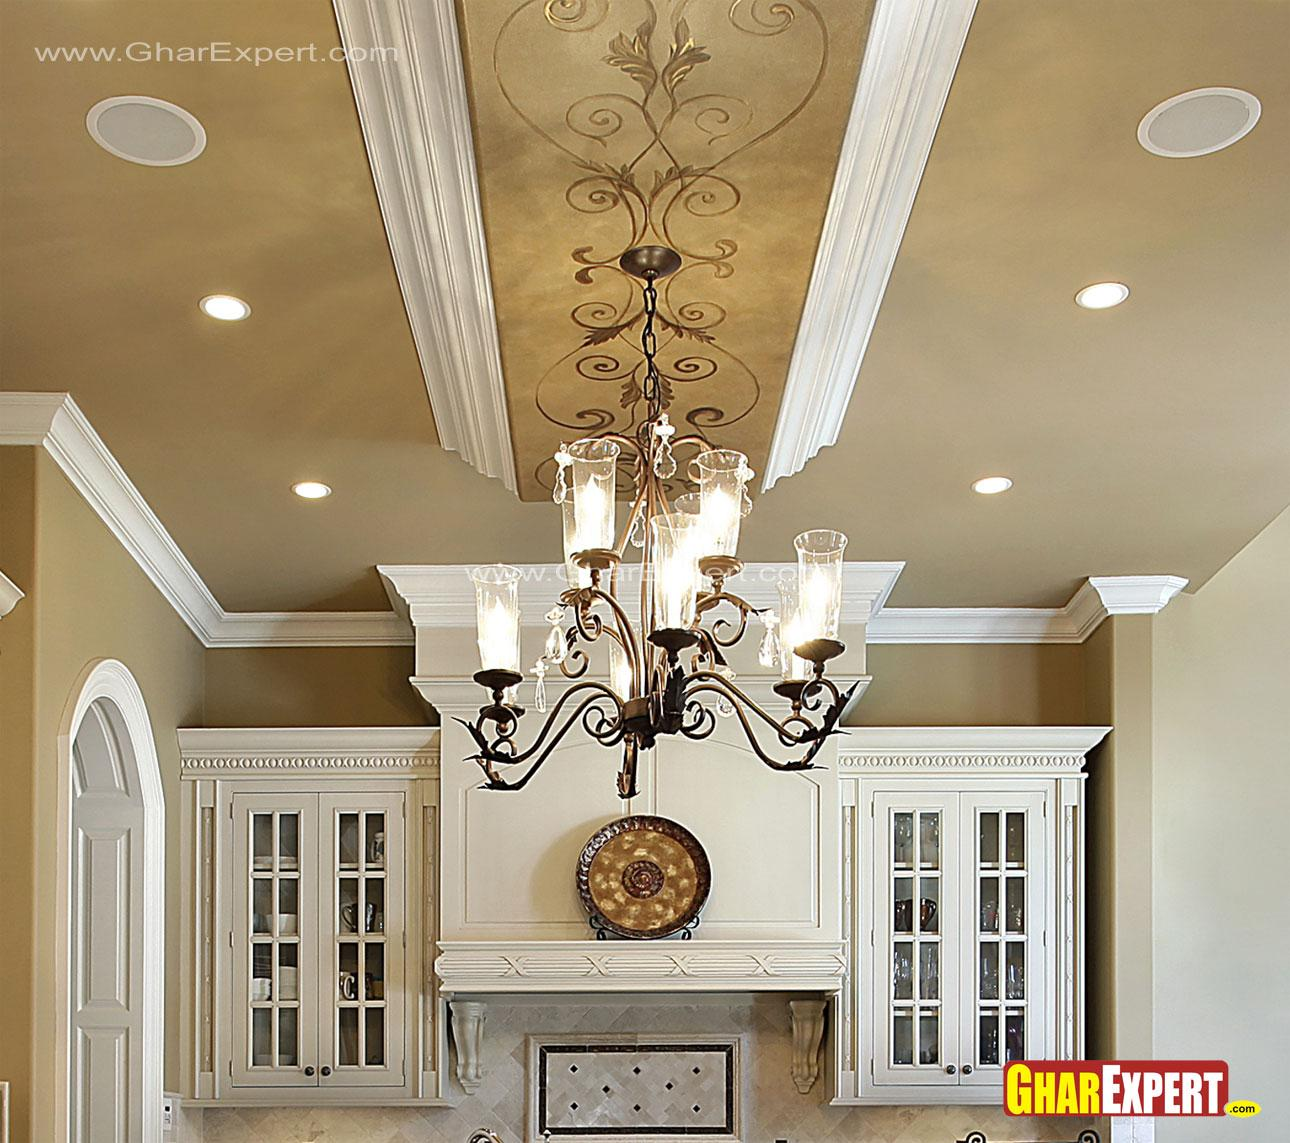 Chandelier and false ceiling d....